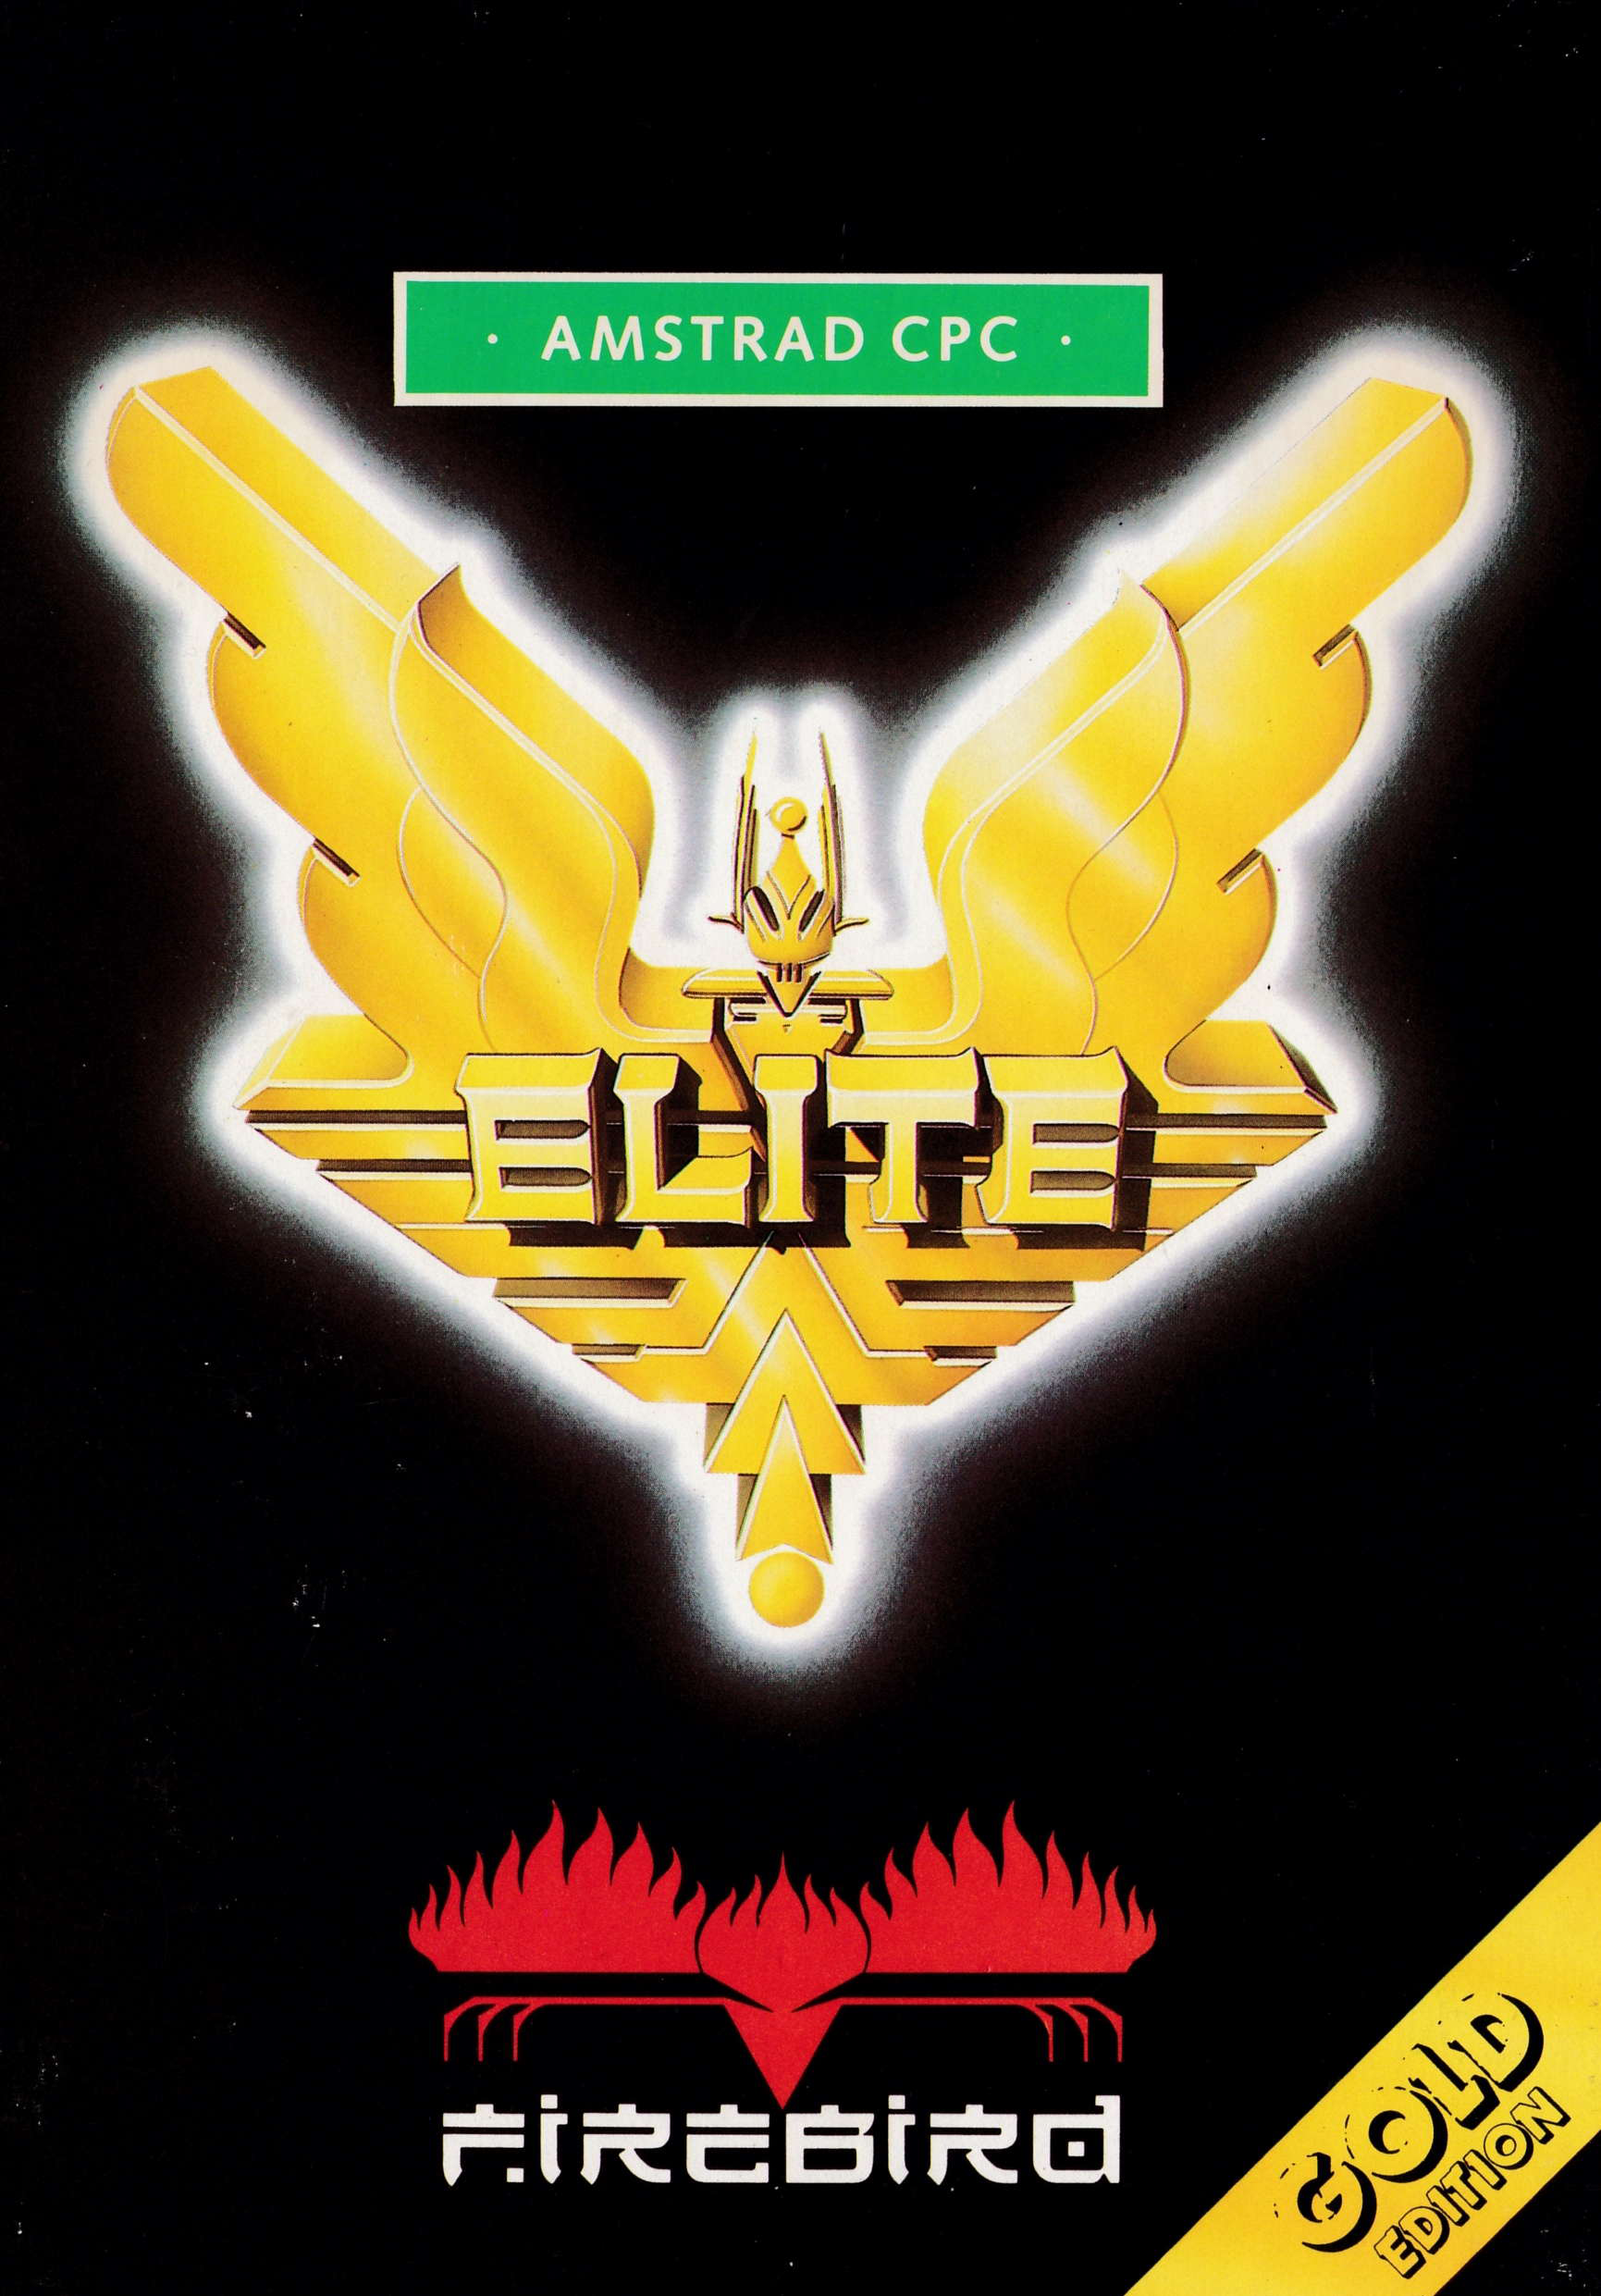 cover of the Amstrad CPC game Elite  by GameBase CPC